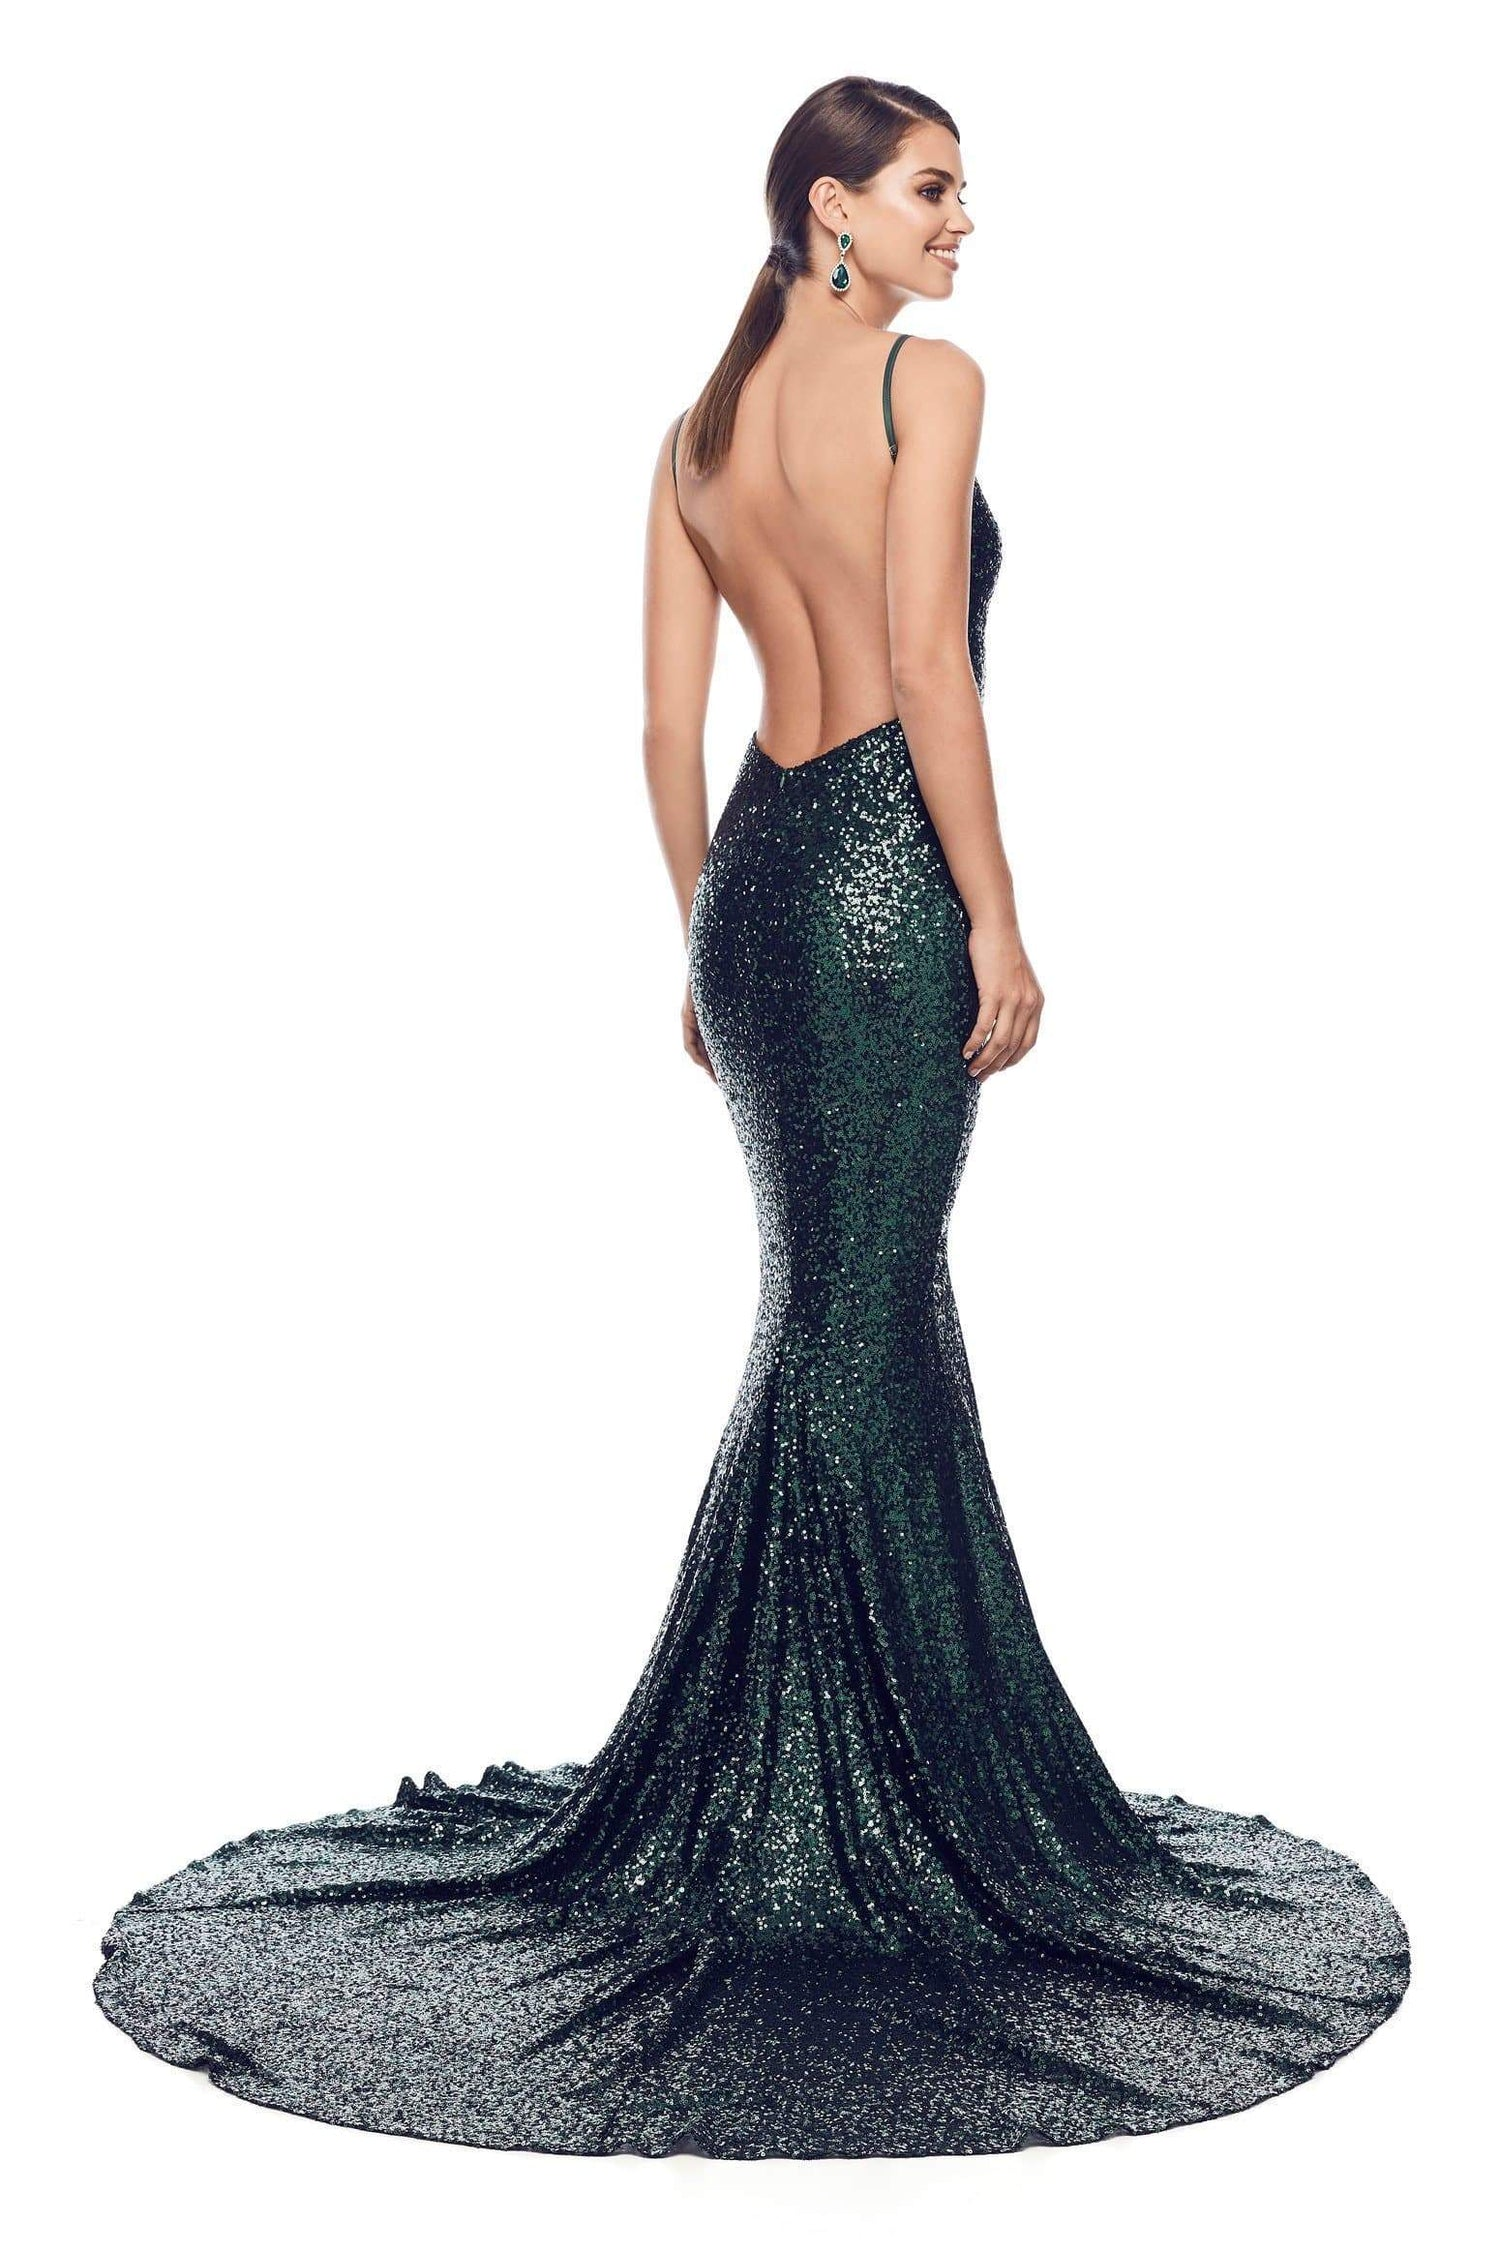 18b7793c8951 Yassmine Luxe - Backless Emerald Sequin Gown with Plunge Neckline ...